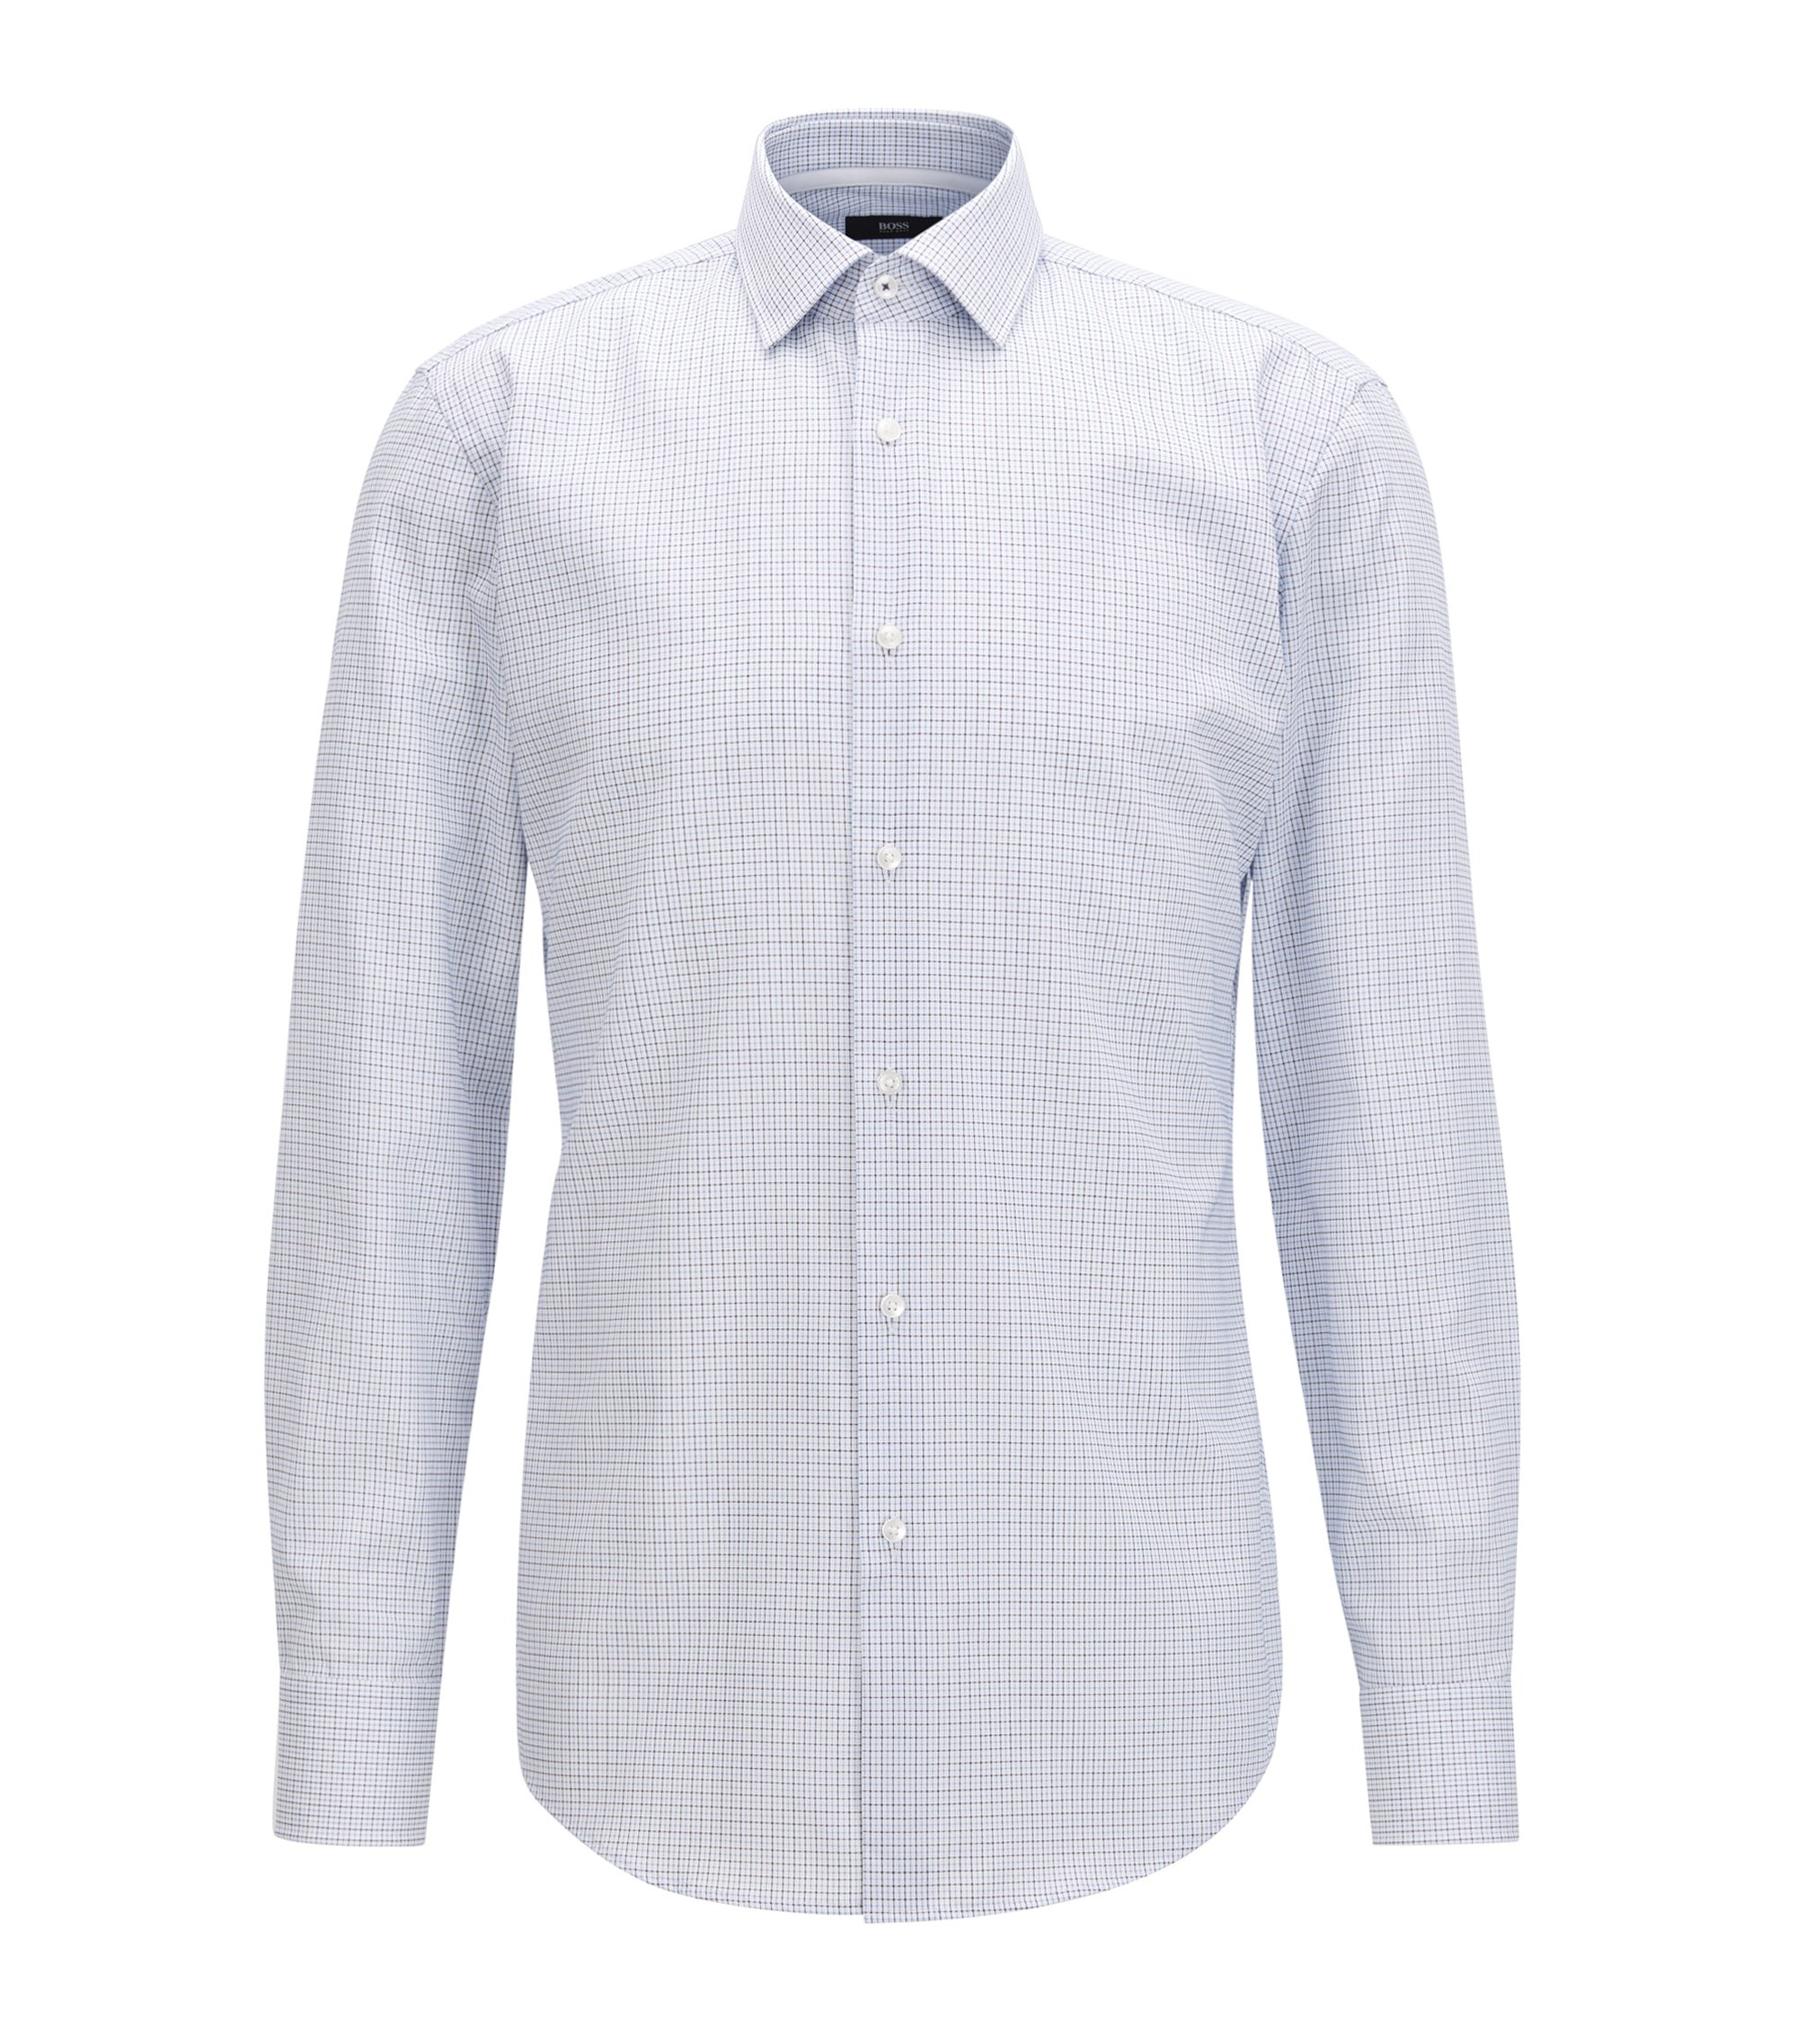 Camicia a quadri slim fit in cotone facile da stirare, Blu